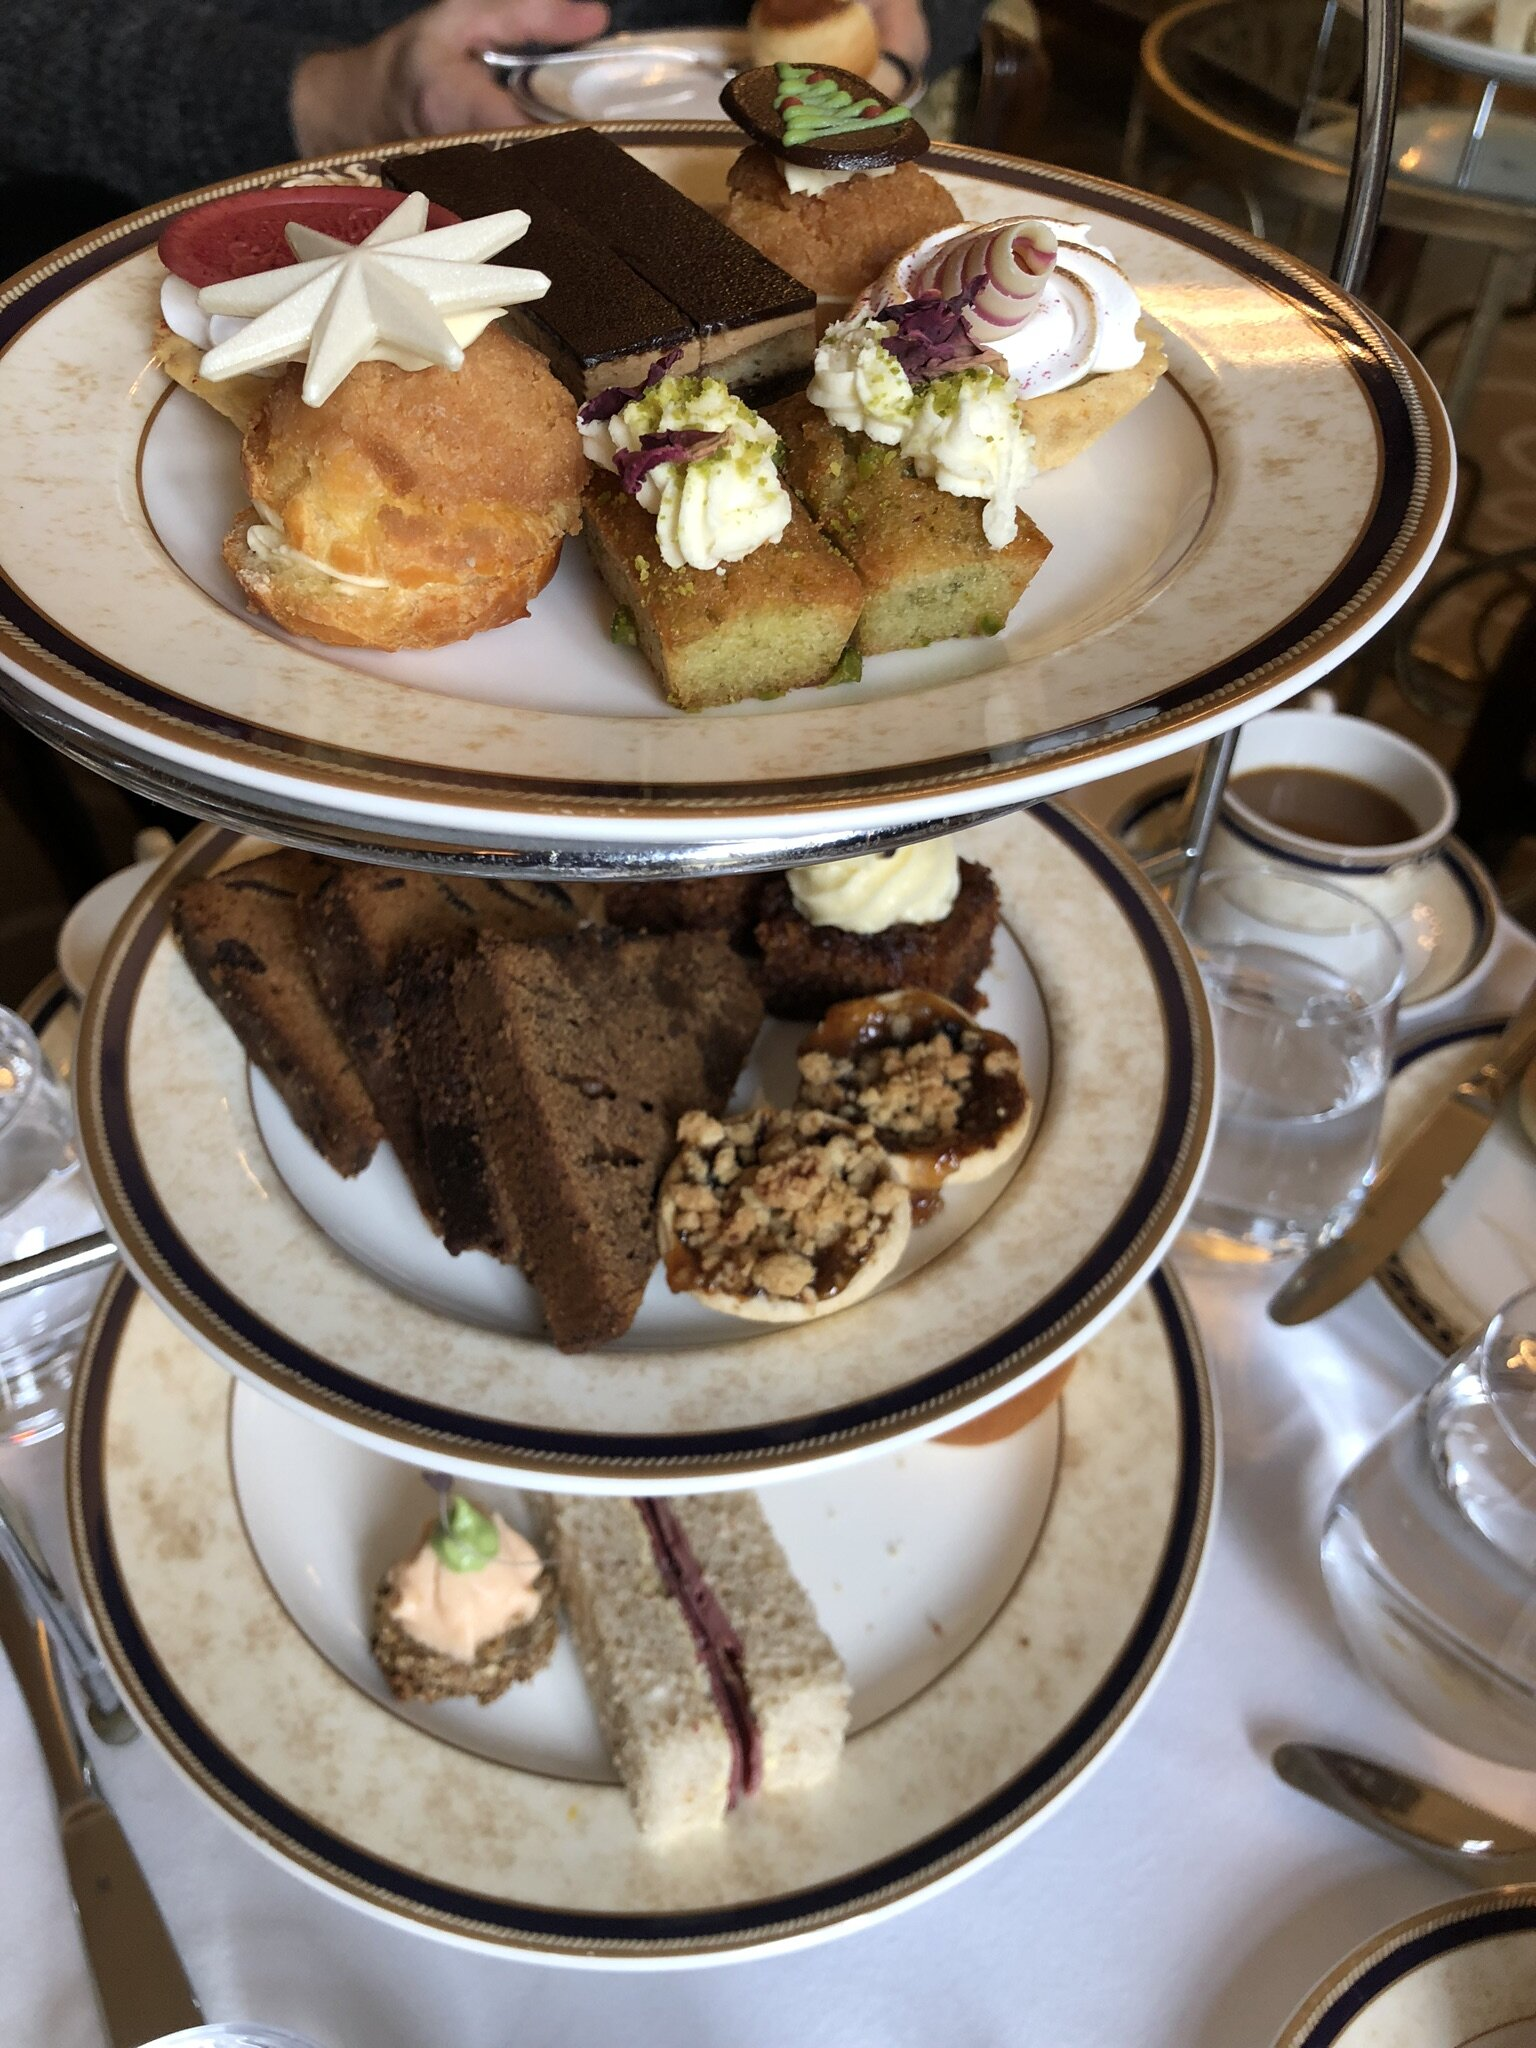 Afternoon Tea at the Hayfield Manor hotel in Cork, Ireland.